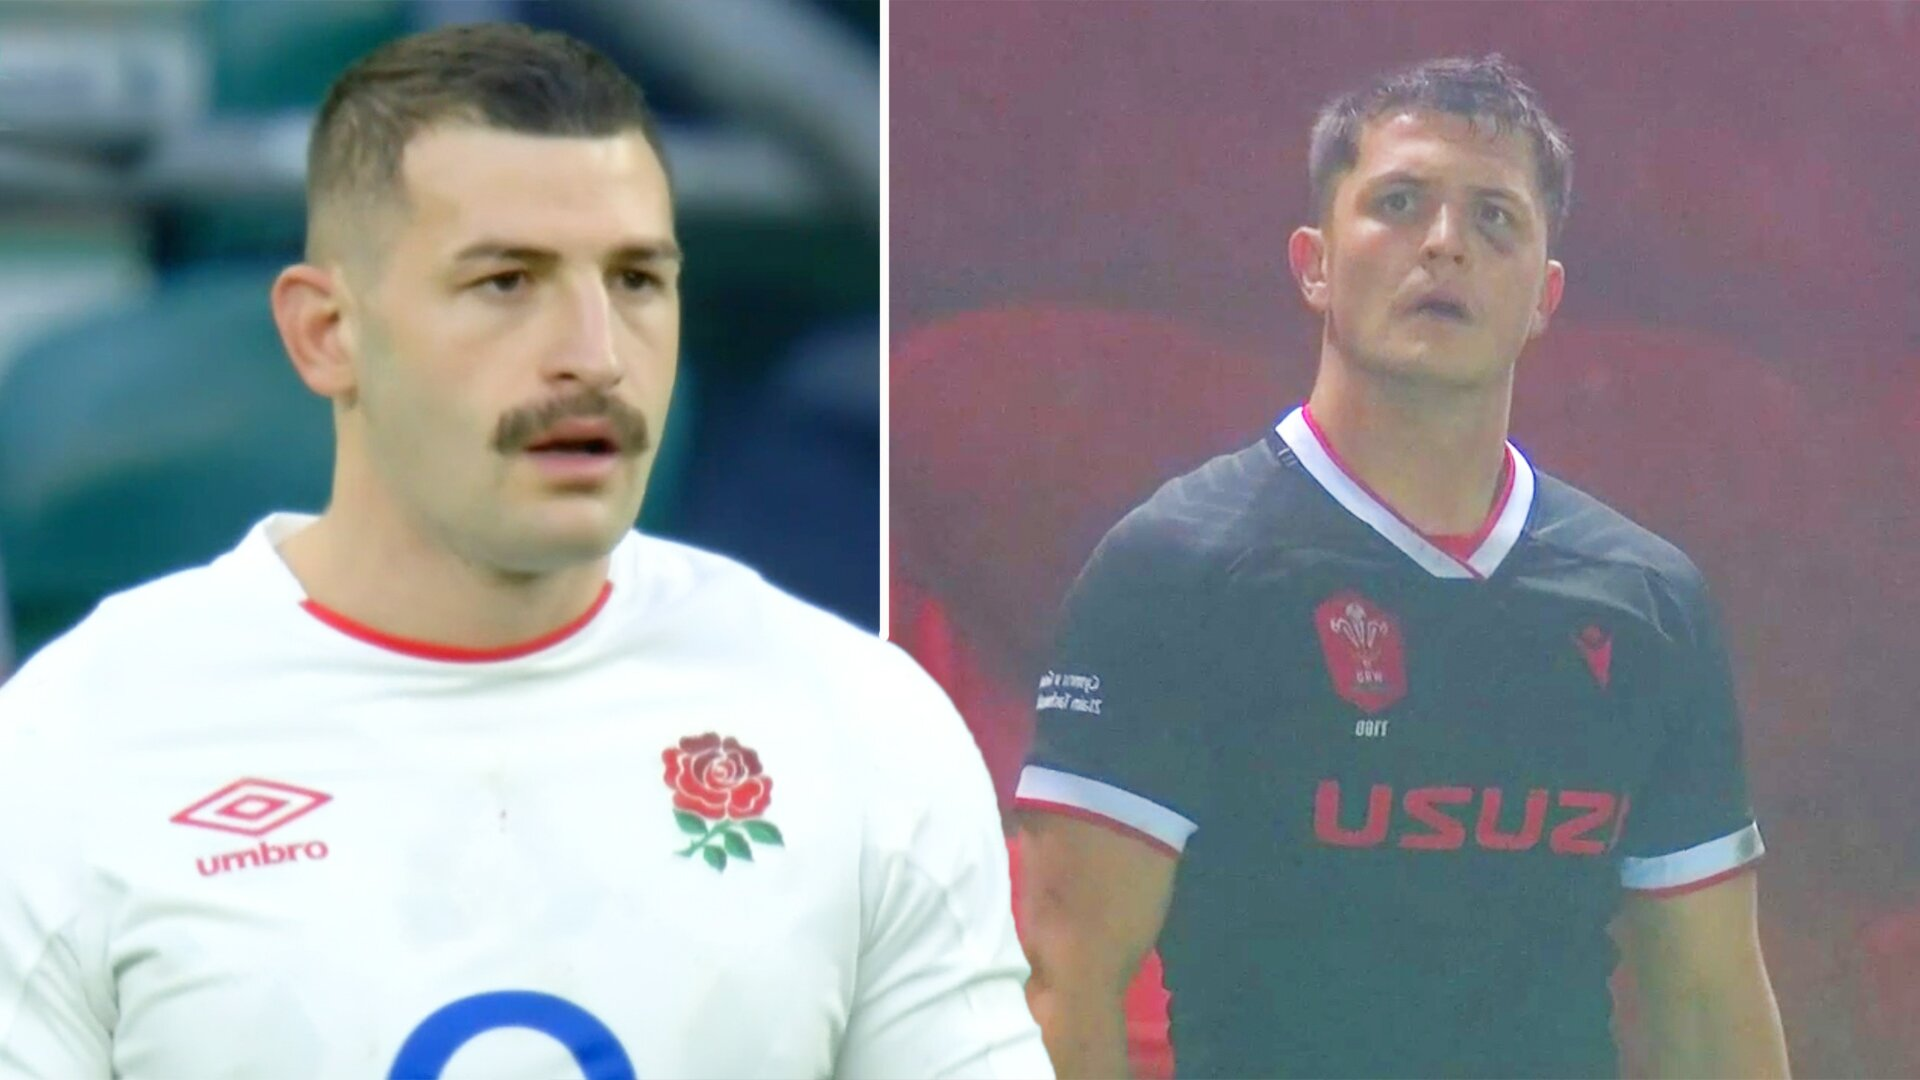 'It's going to be a massacre' - fan rivalry hits fever pitch in lead up to Wales vs England